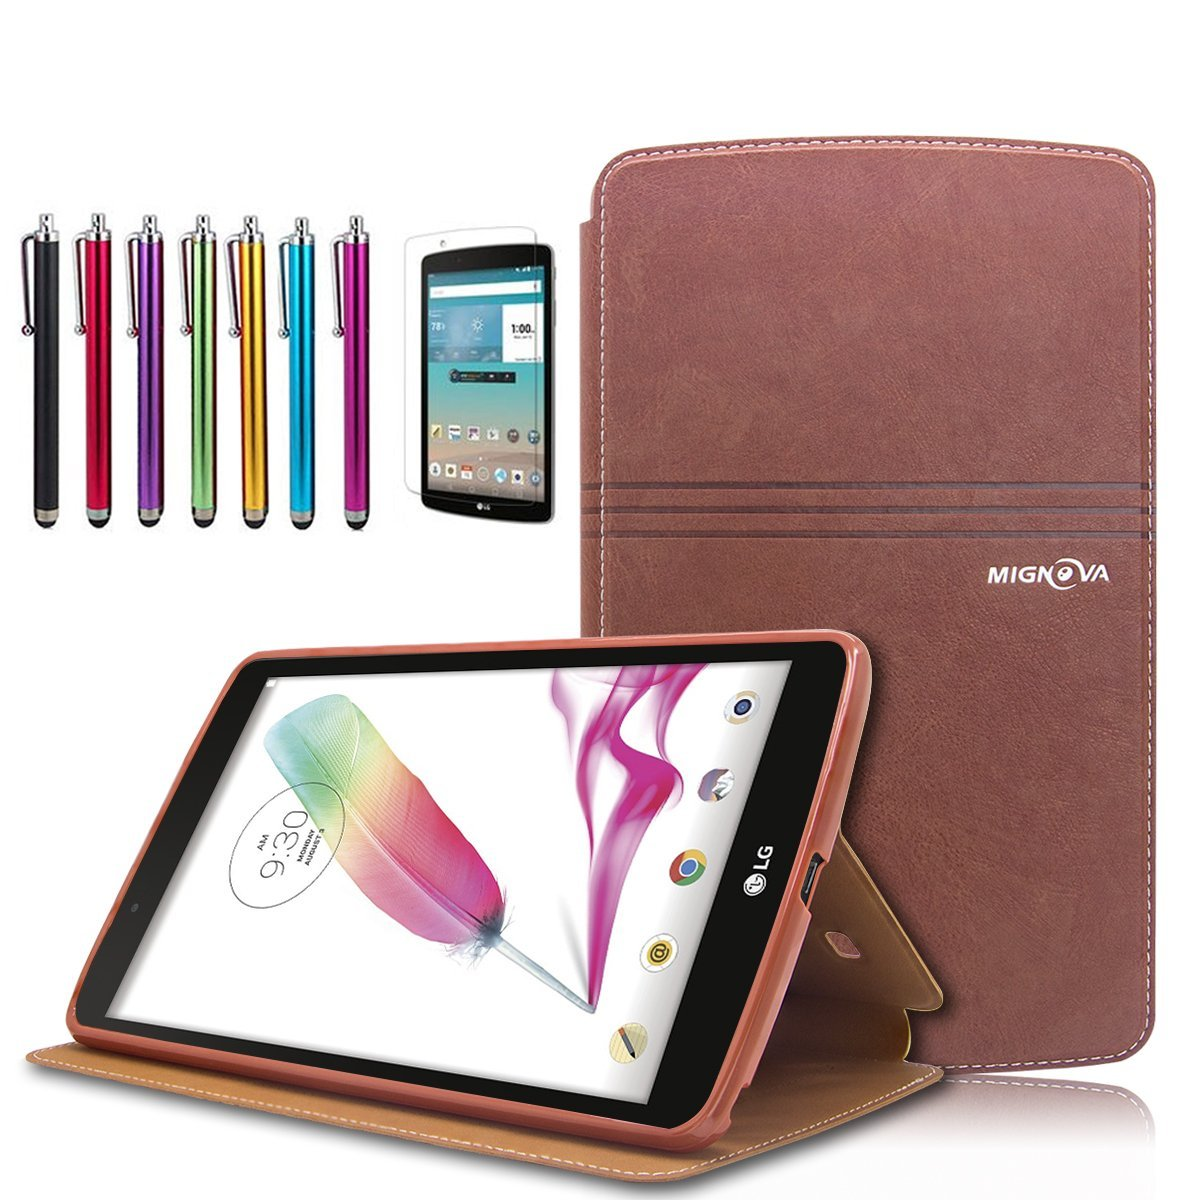 Mignova LG G Pad F 8.0 / G Pad II 8.0 Folio Case - Premium PU Leather Cover [Fit (4G LTE AT&T Model V495 / T-Mobile Model V496 / US Cellular Model UK495) & G Pad 2 8.0 V498] 8-Inch Tablet (Brown)